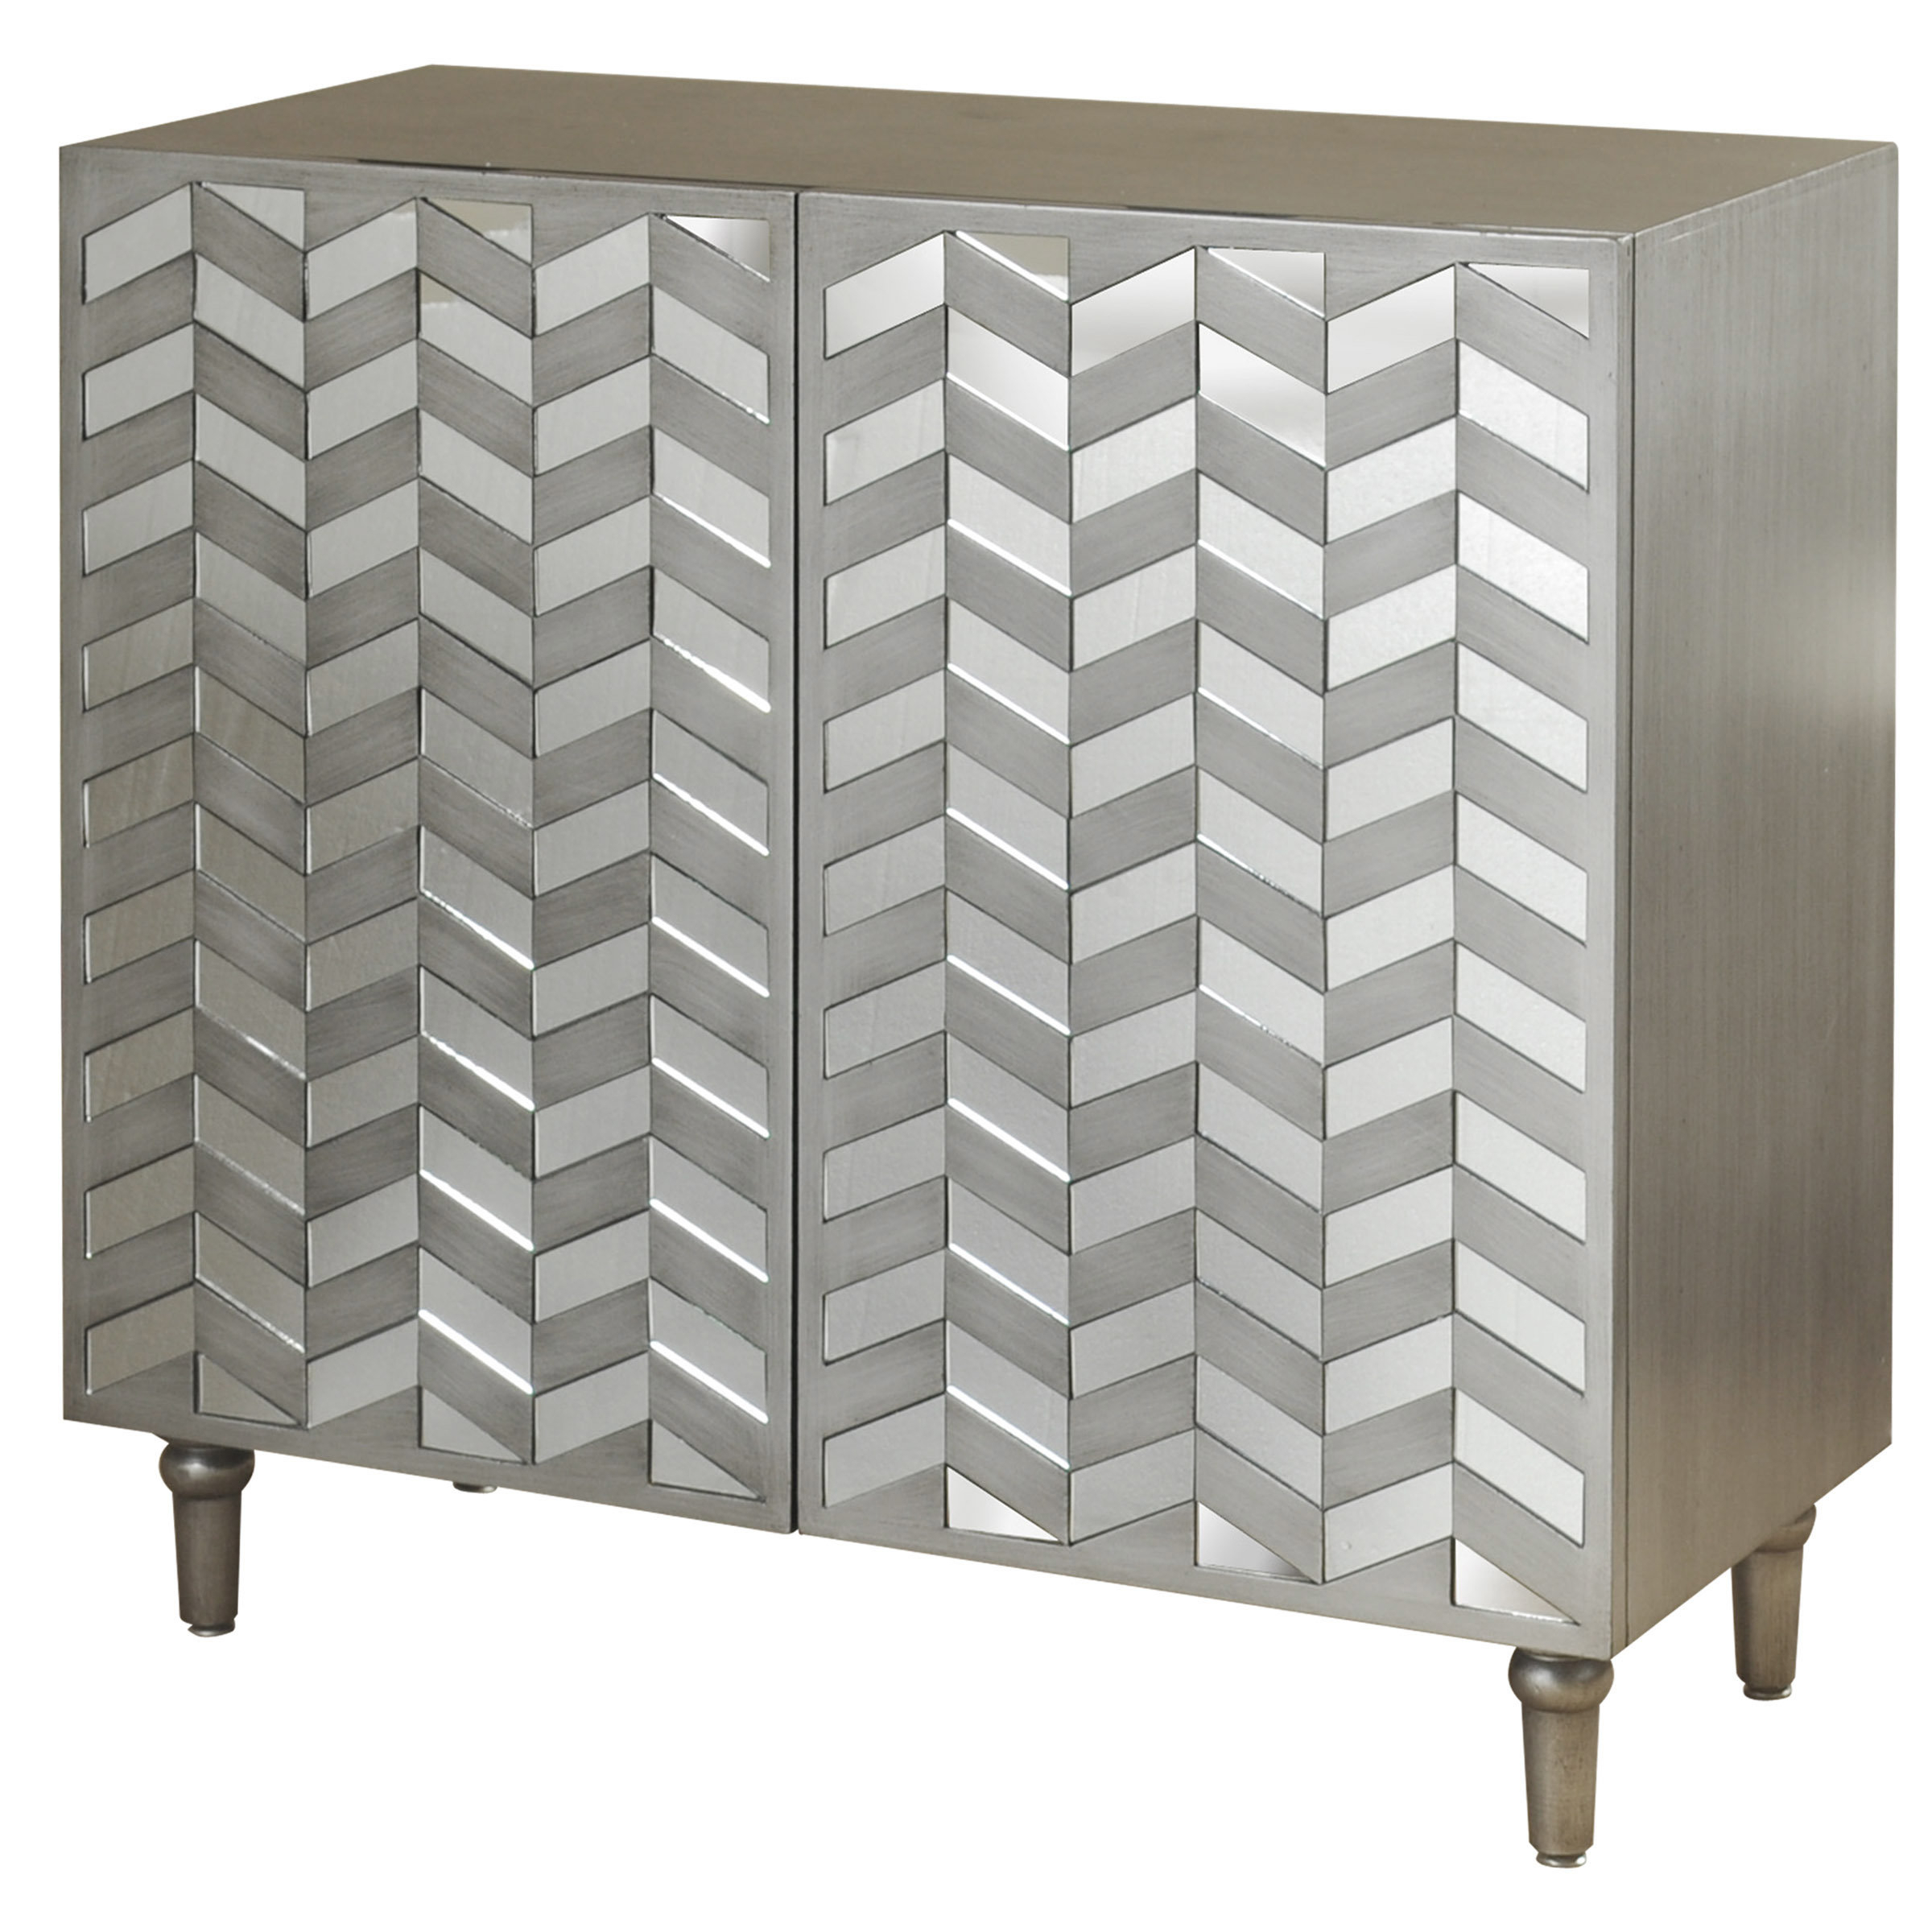 Leticia Credenza With Regard To Most Up To Date Bremner Credenzas (View 10 of 20)